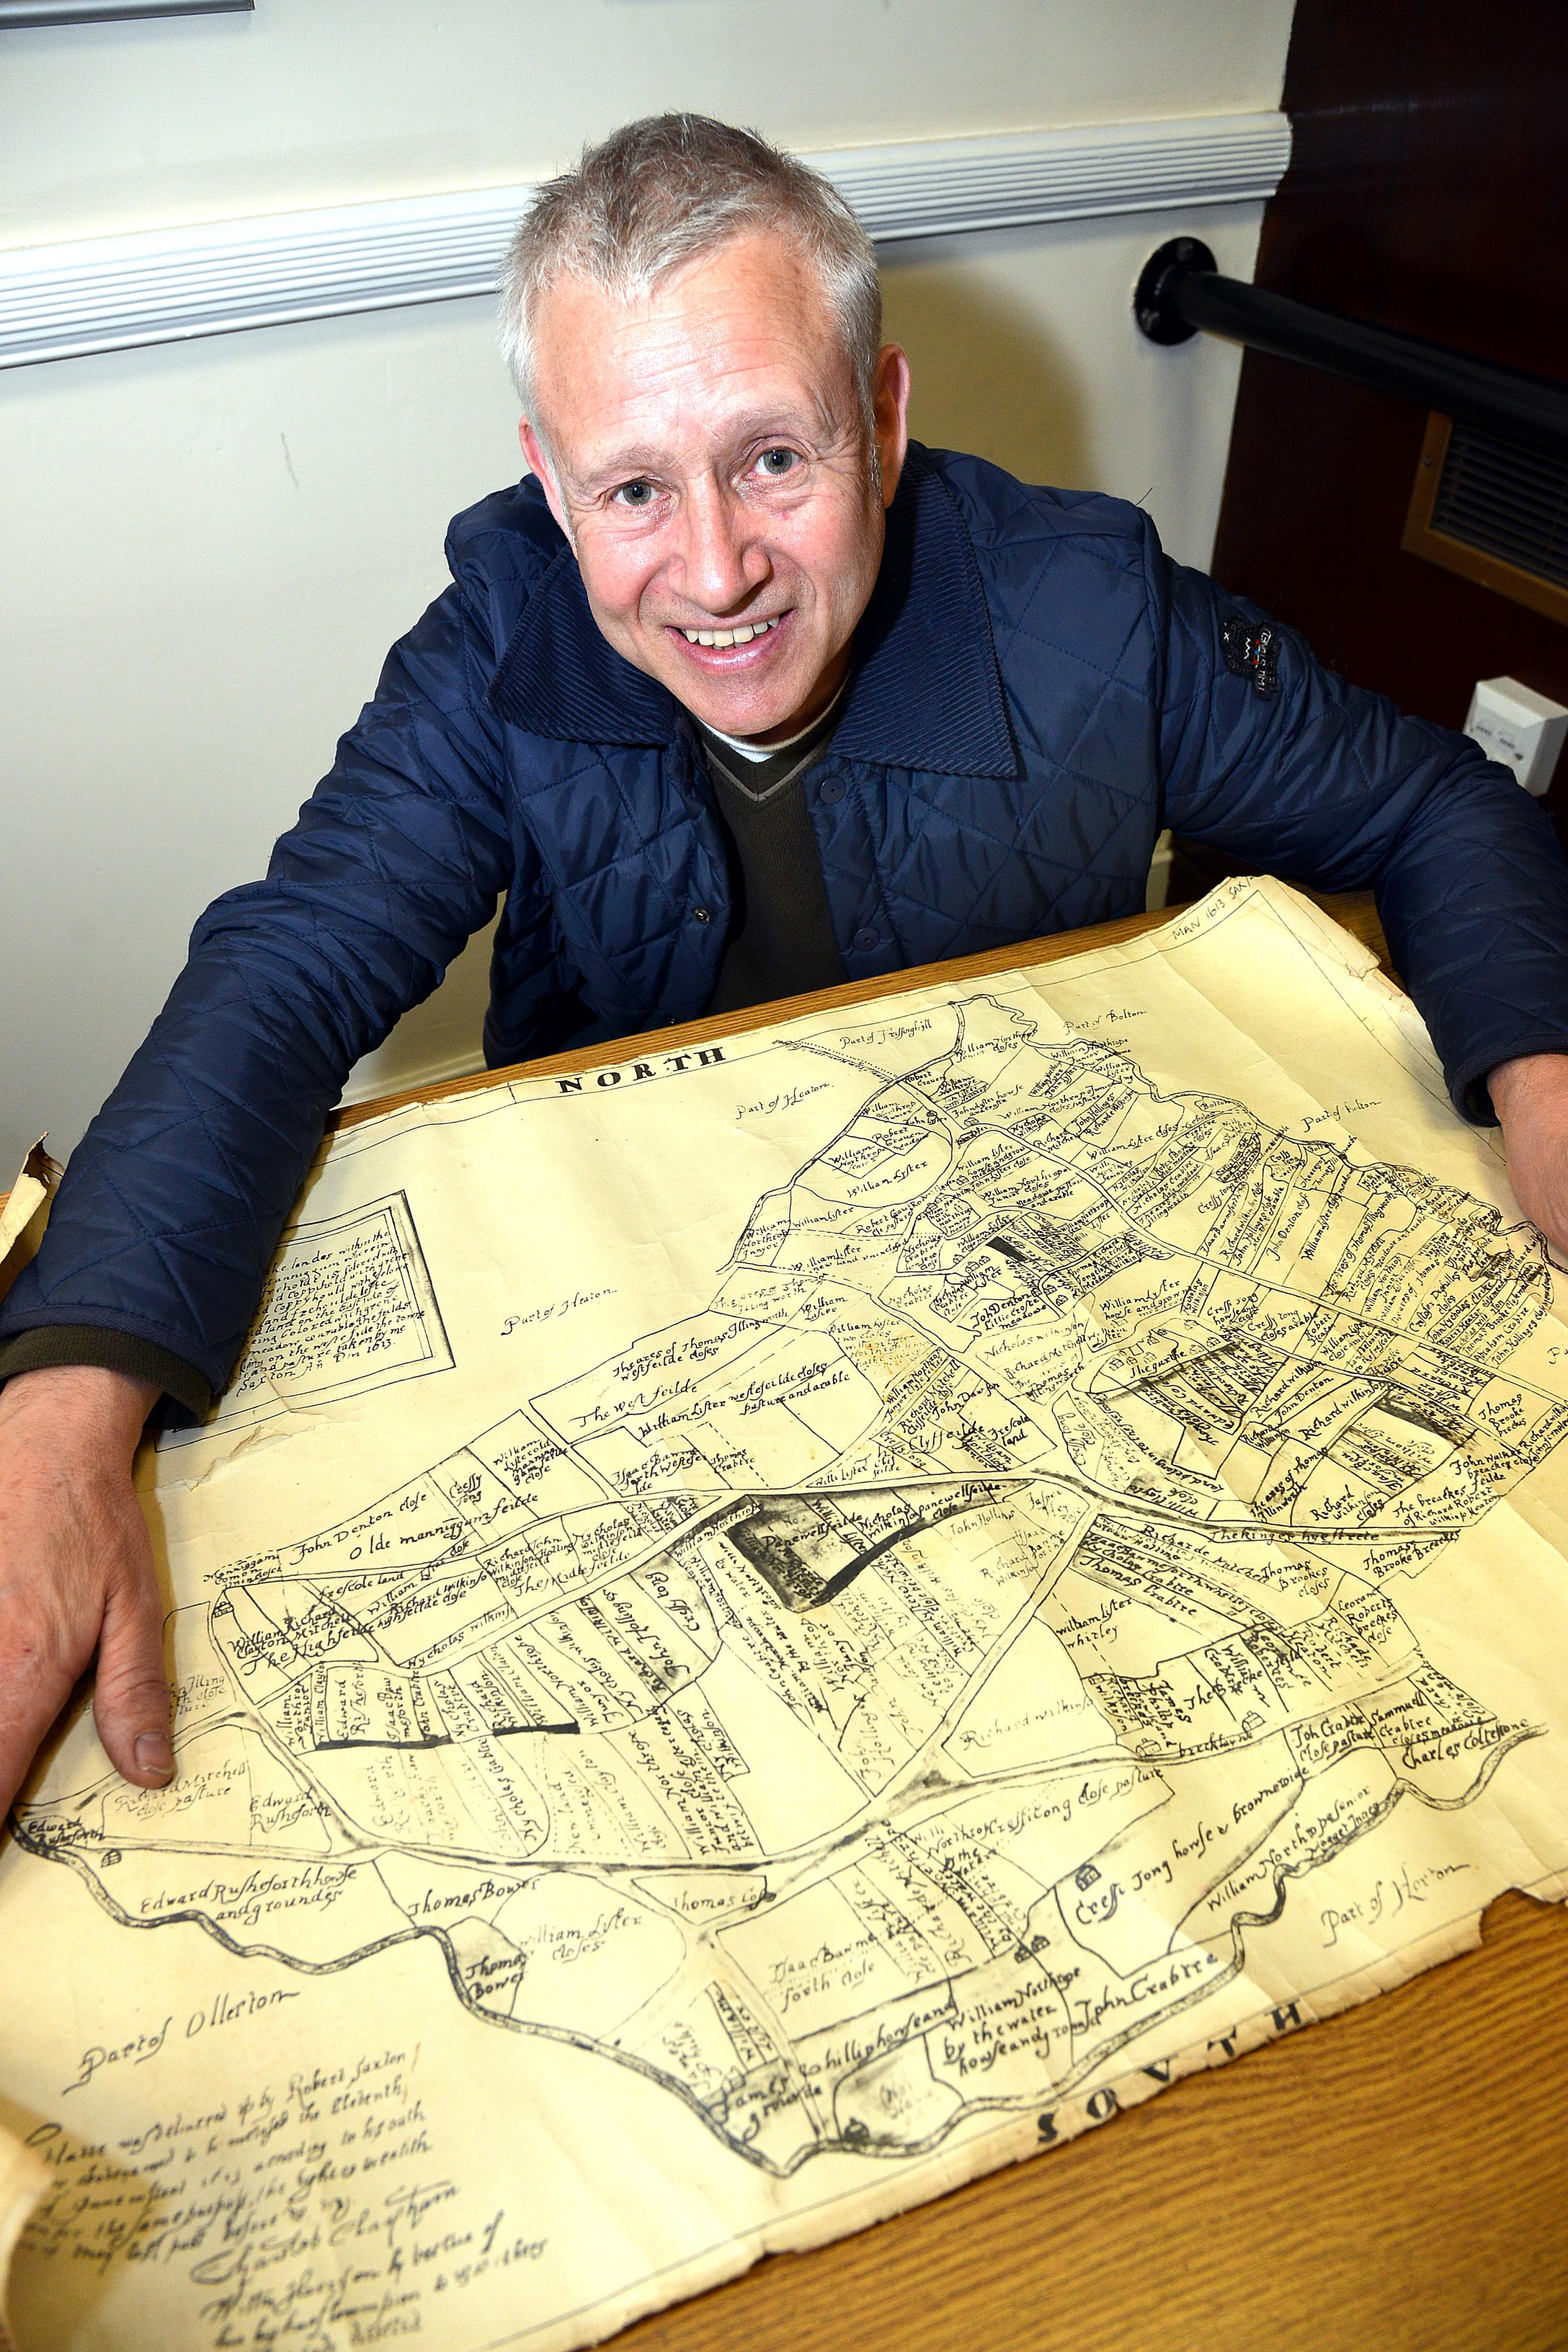 Les Barrett with a map of Bradford from the early 1600s